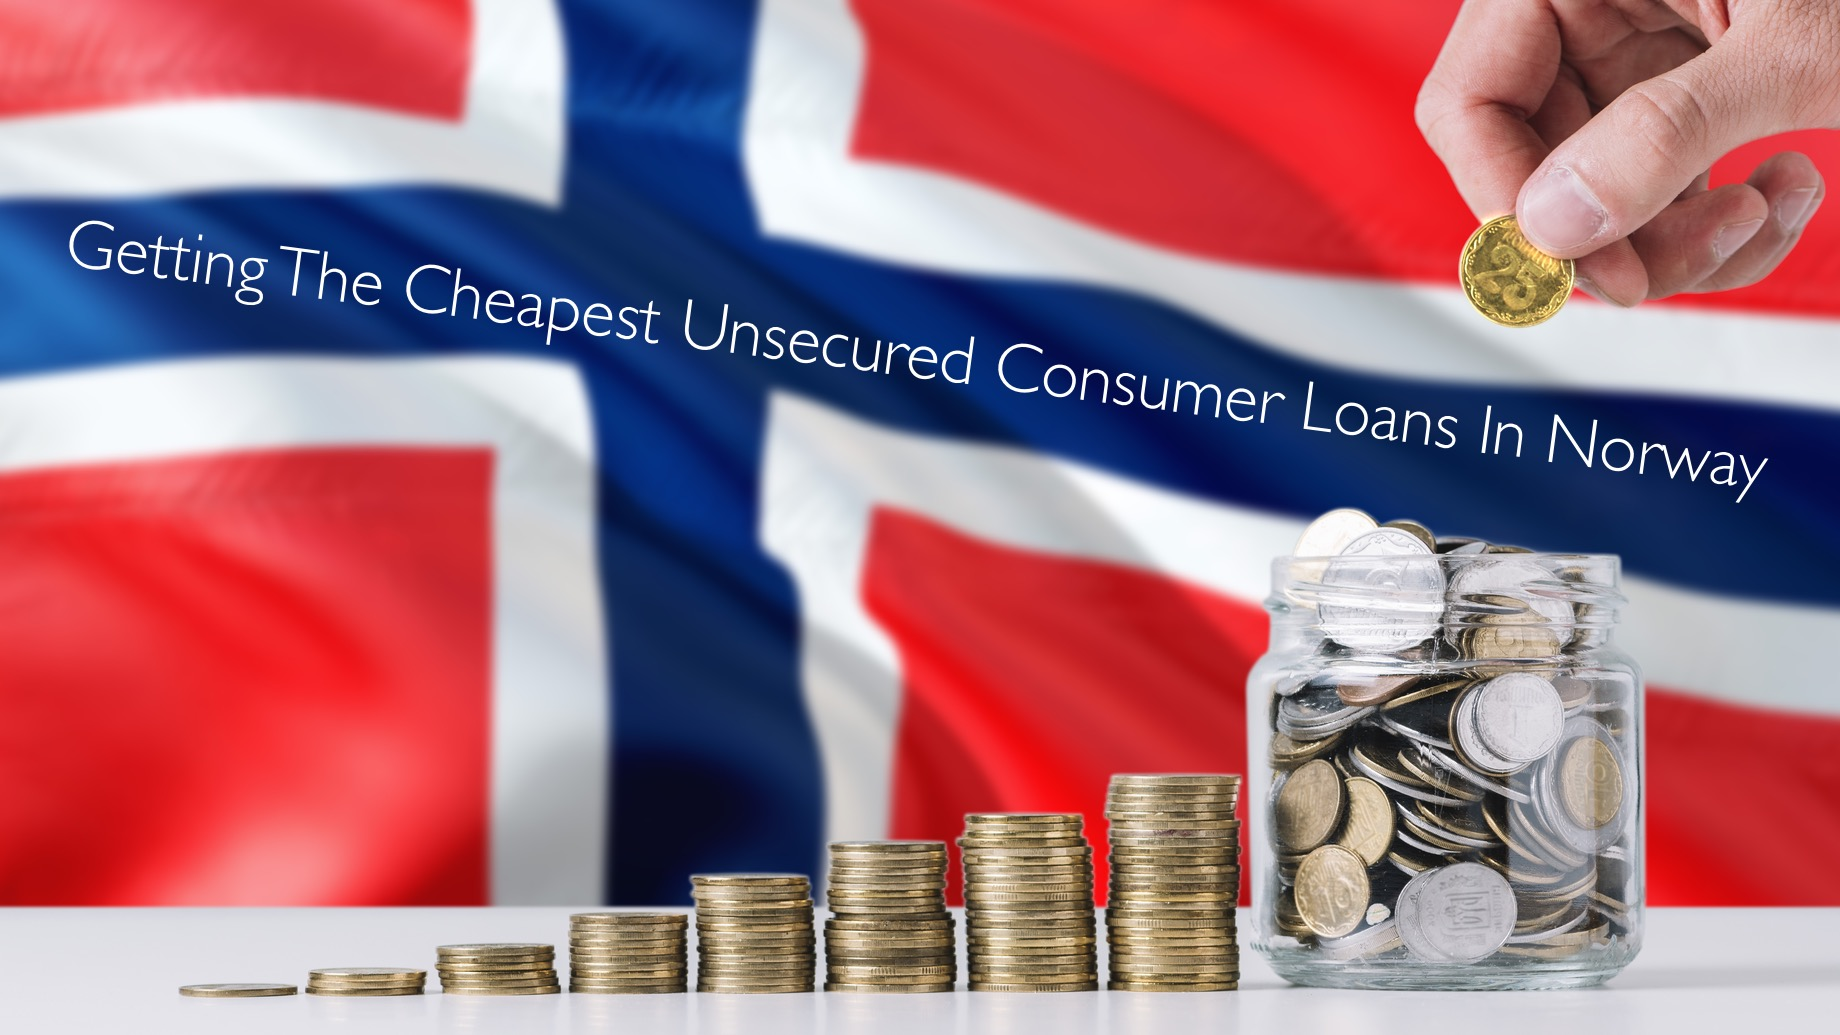 Forbrukslan - Getting The Cheapest Unsecured Consumer Loans In Norway